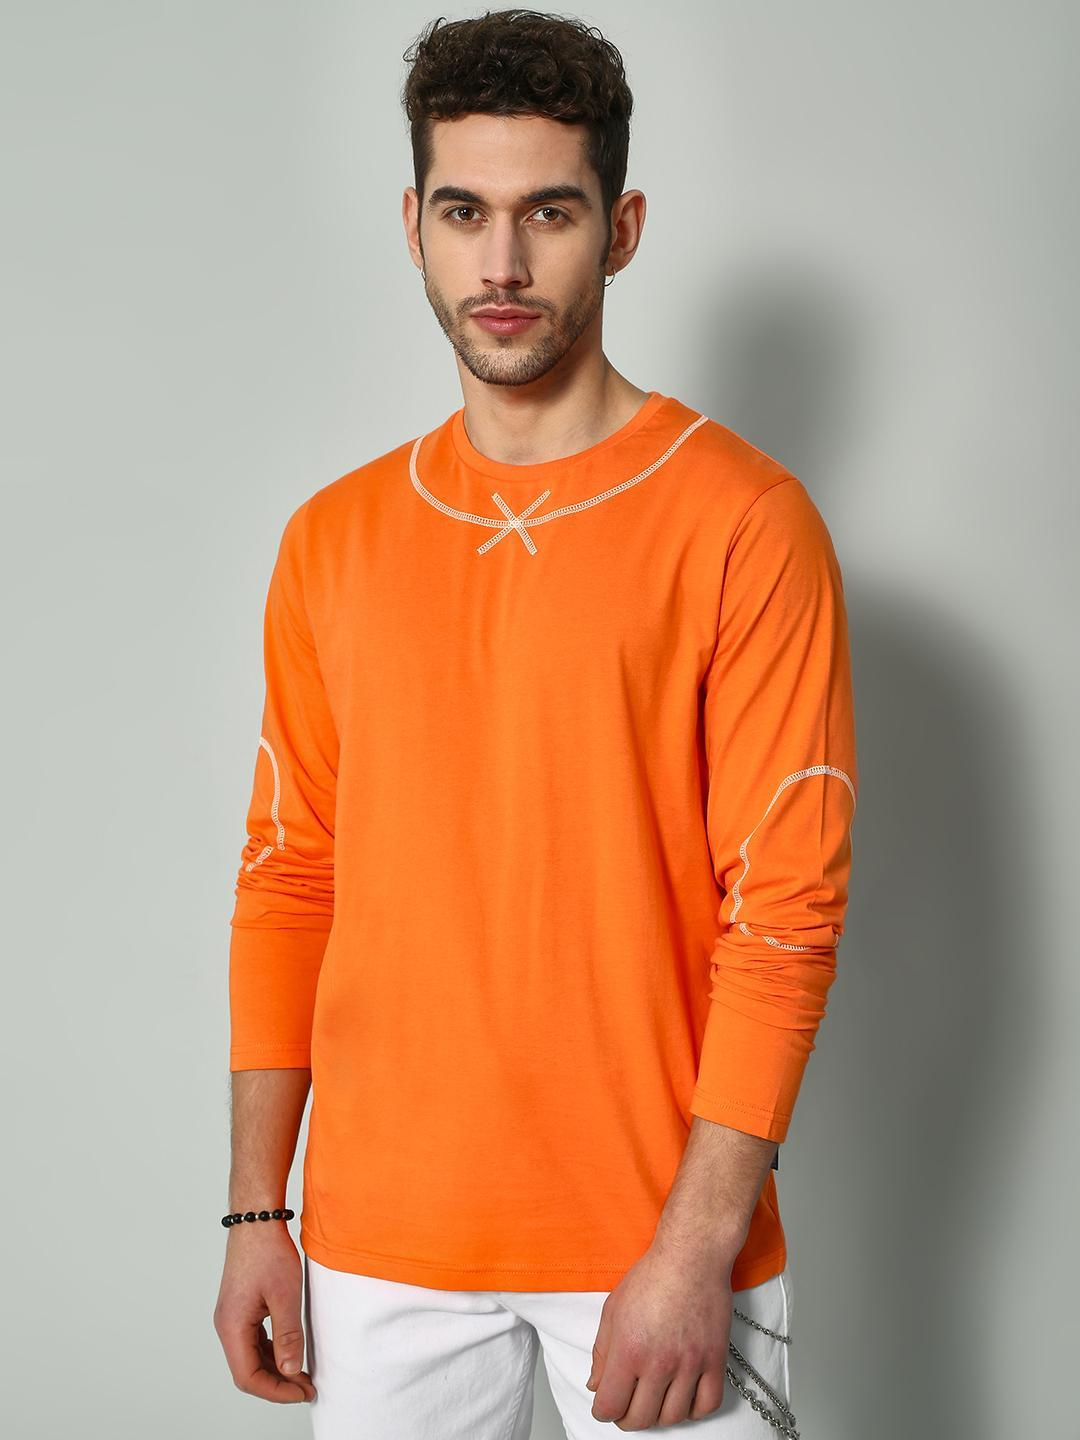 Blue Saint Orange Solid Long Sleeves T-shirt 1